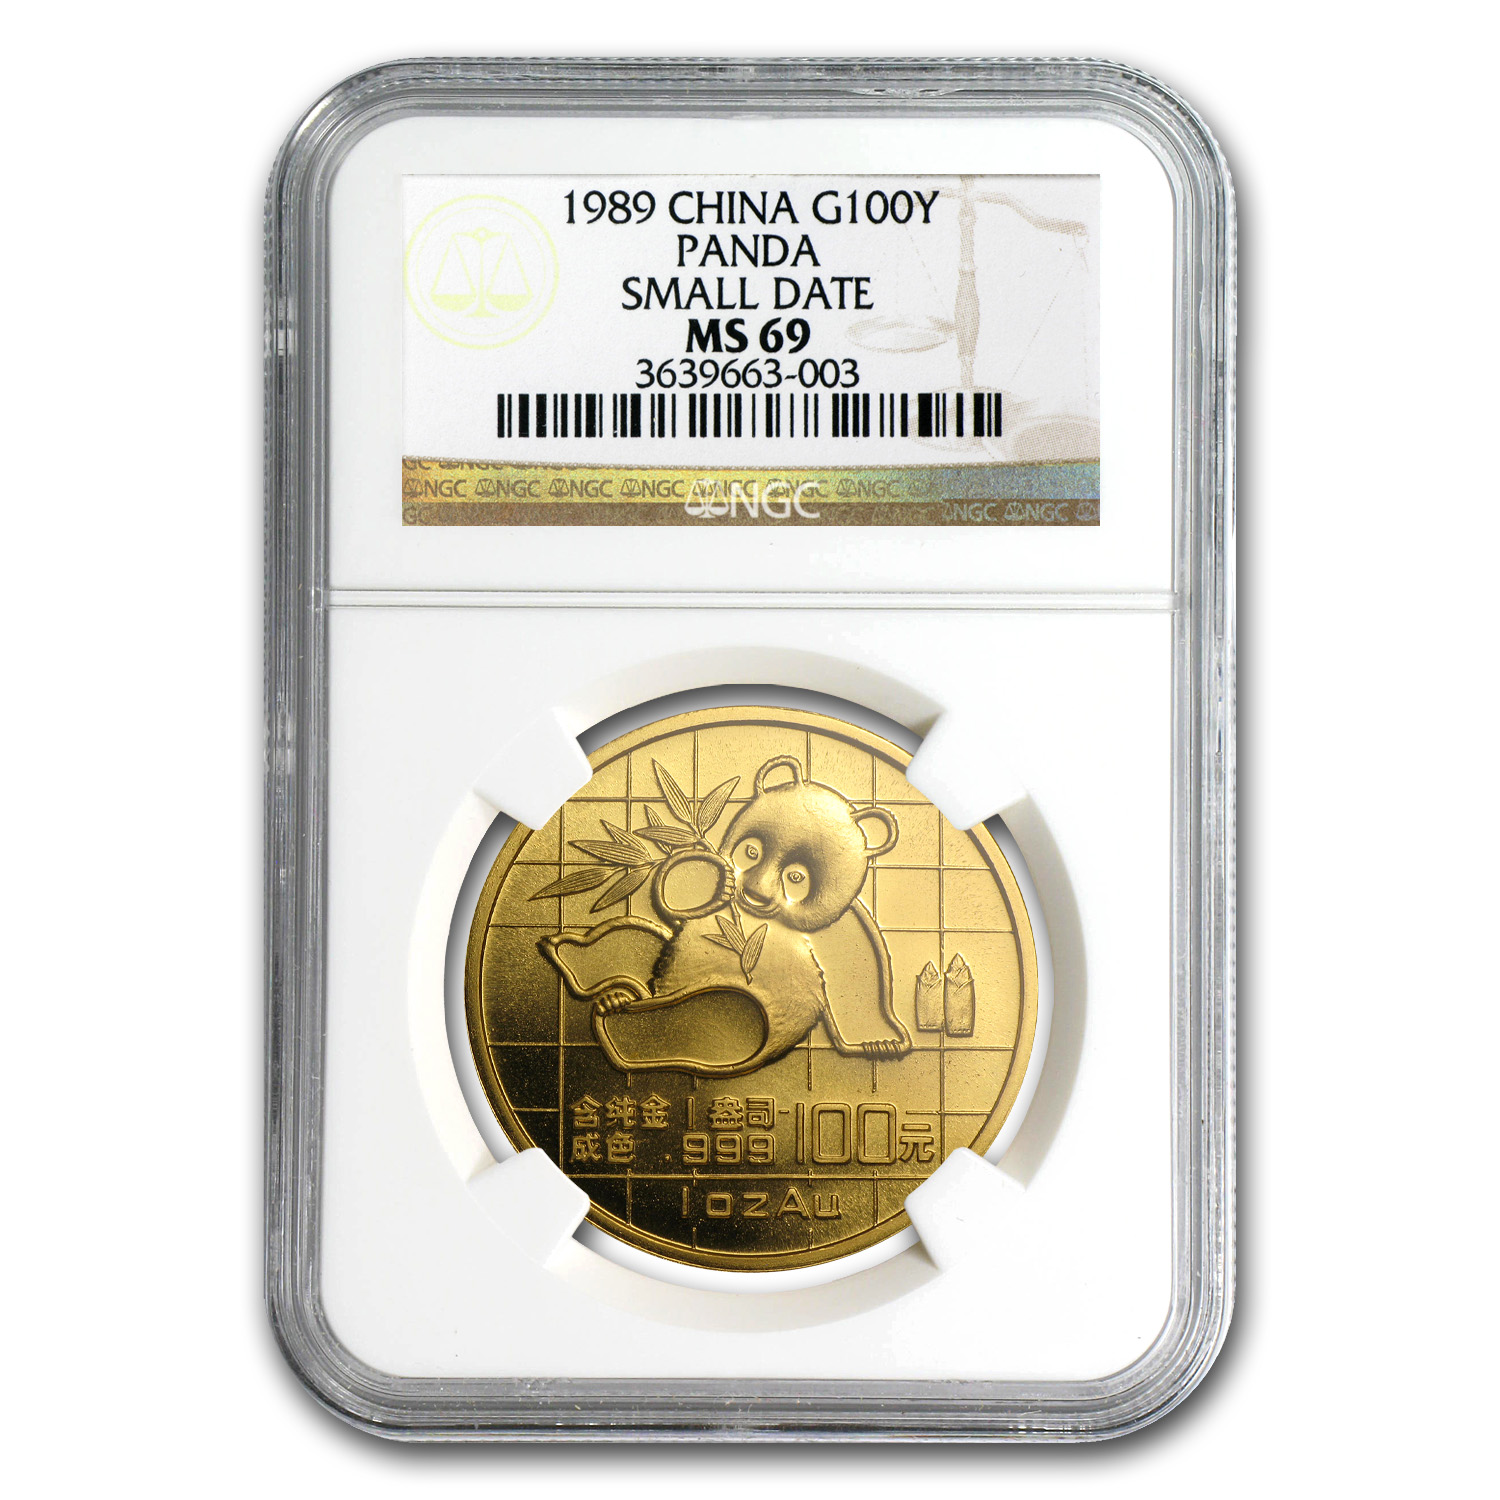 1989 1 oz Gold Chinese Panda MS-69 NGC - Small Date